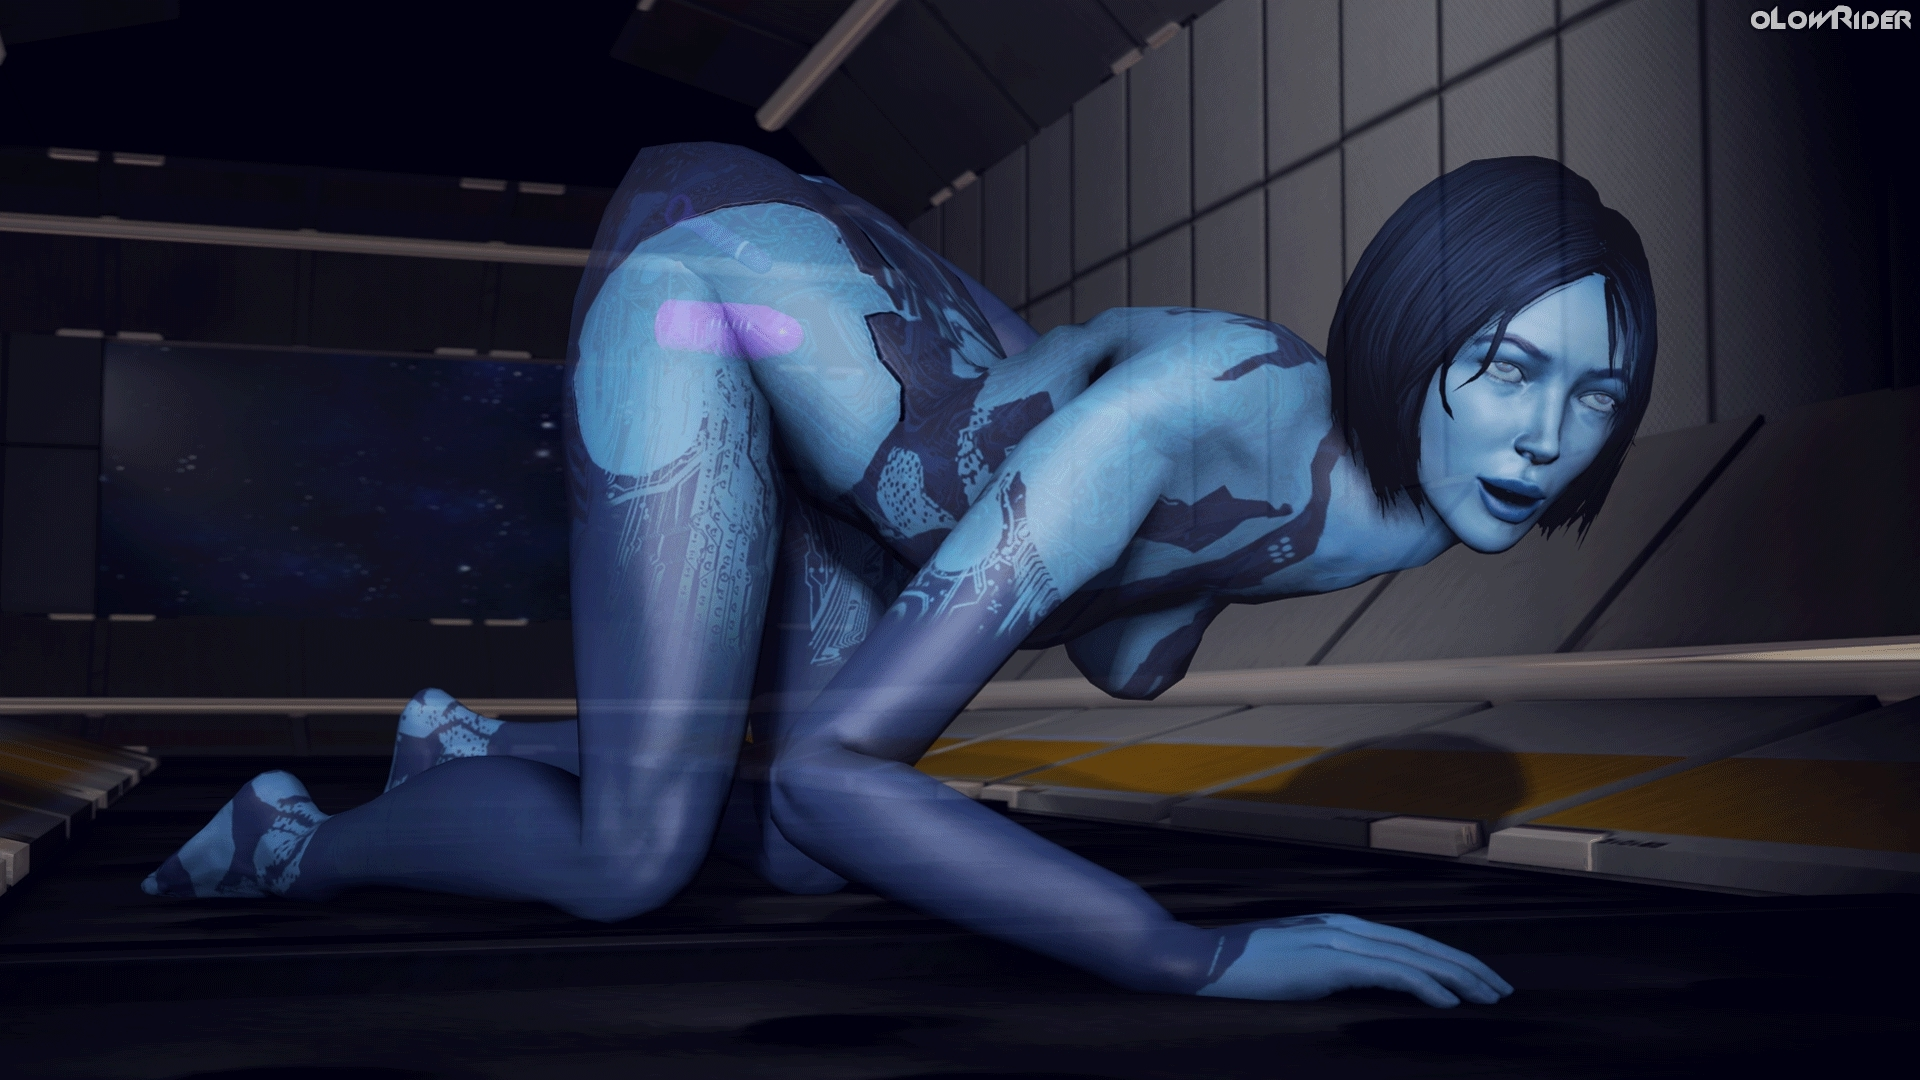 Halo 5 cortana porno erotic clips